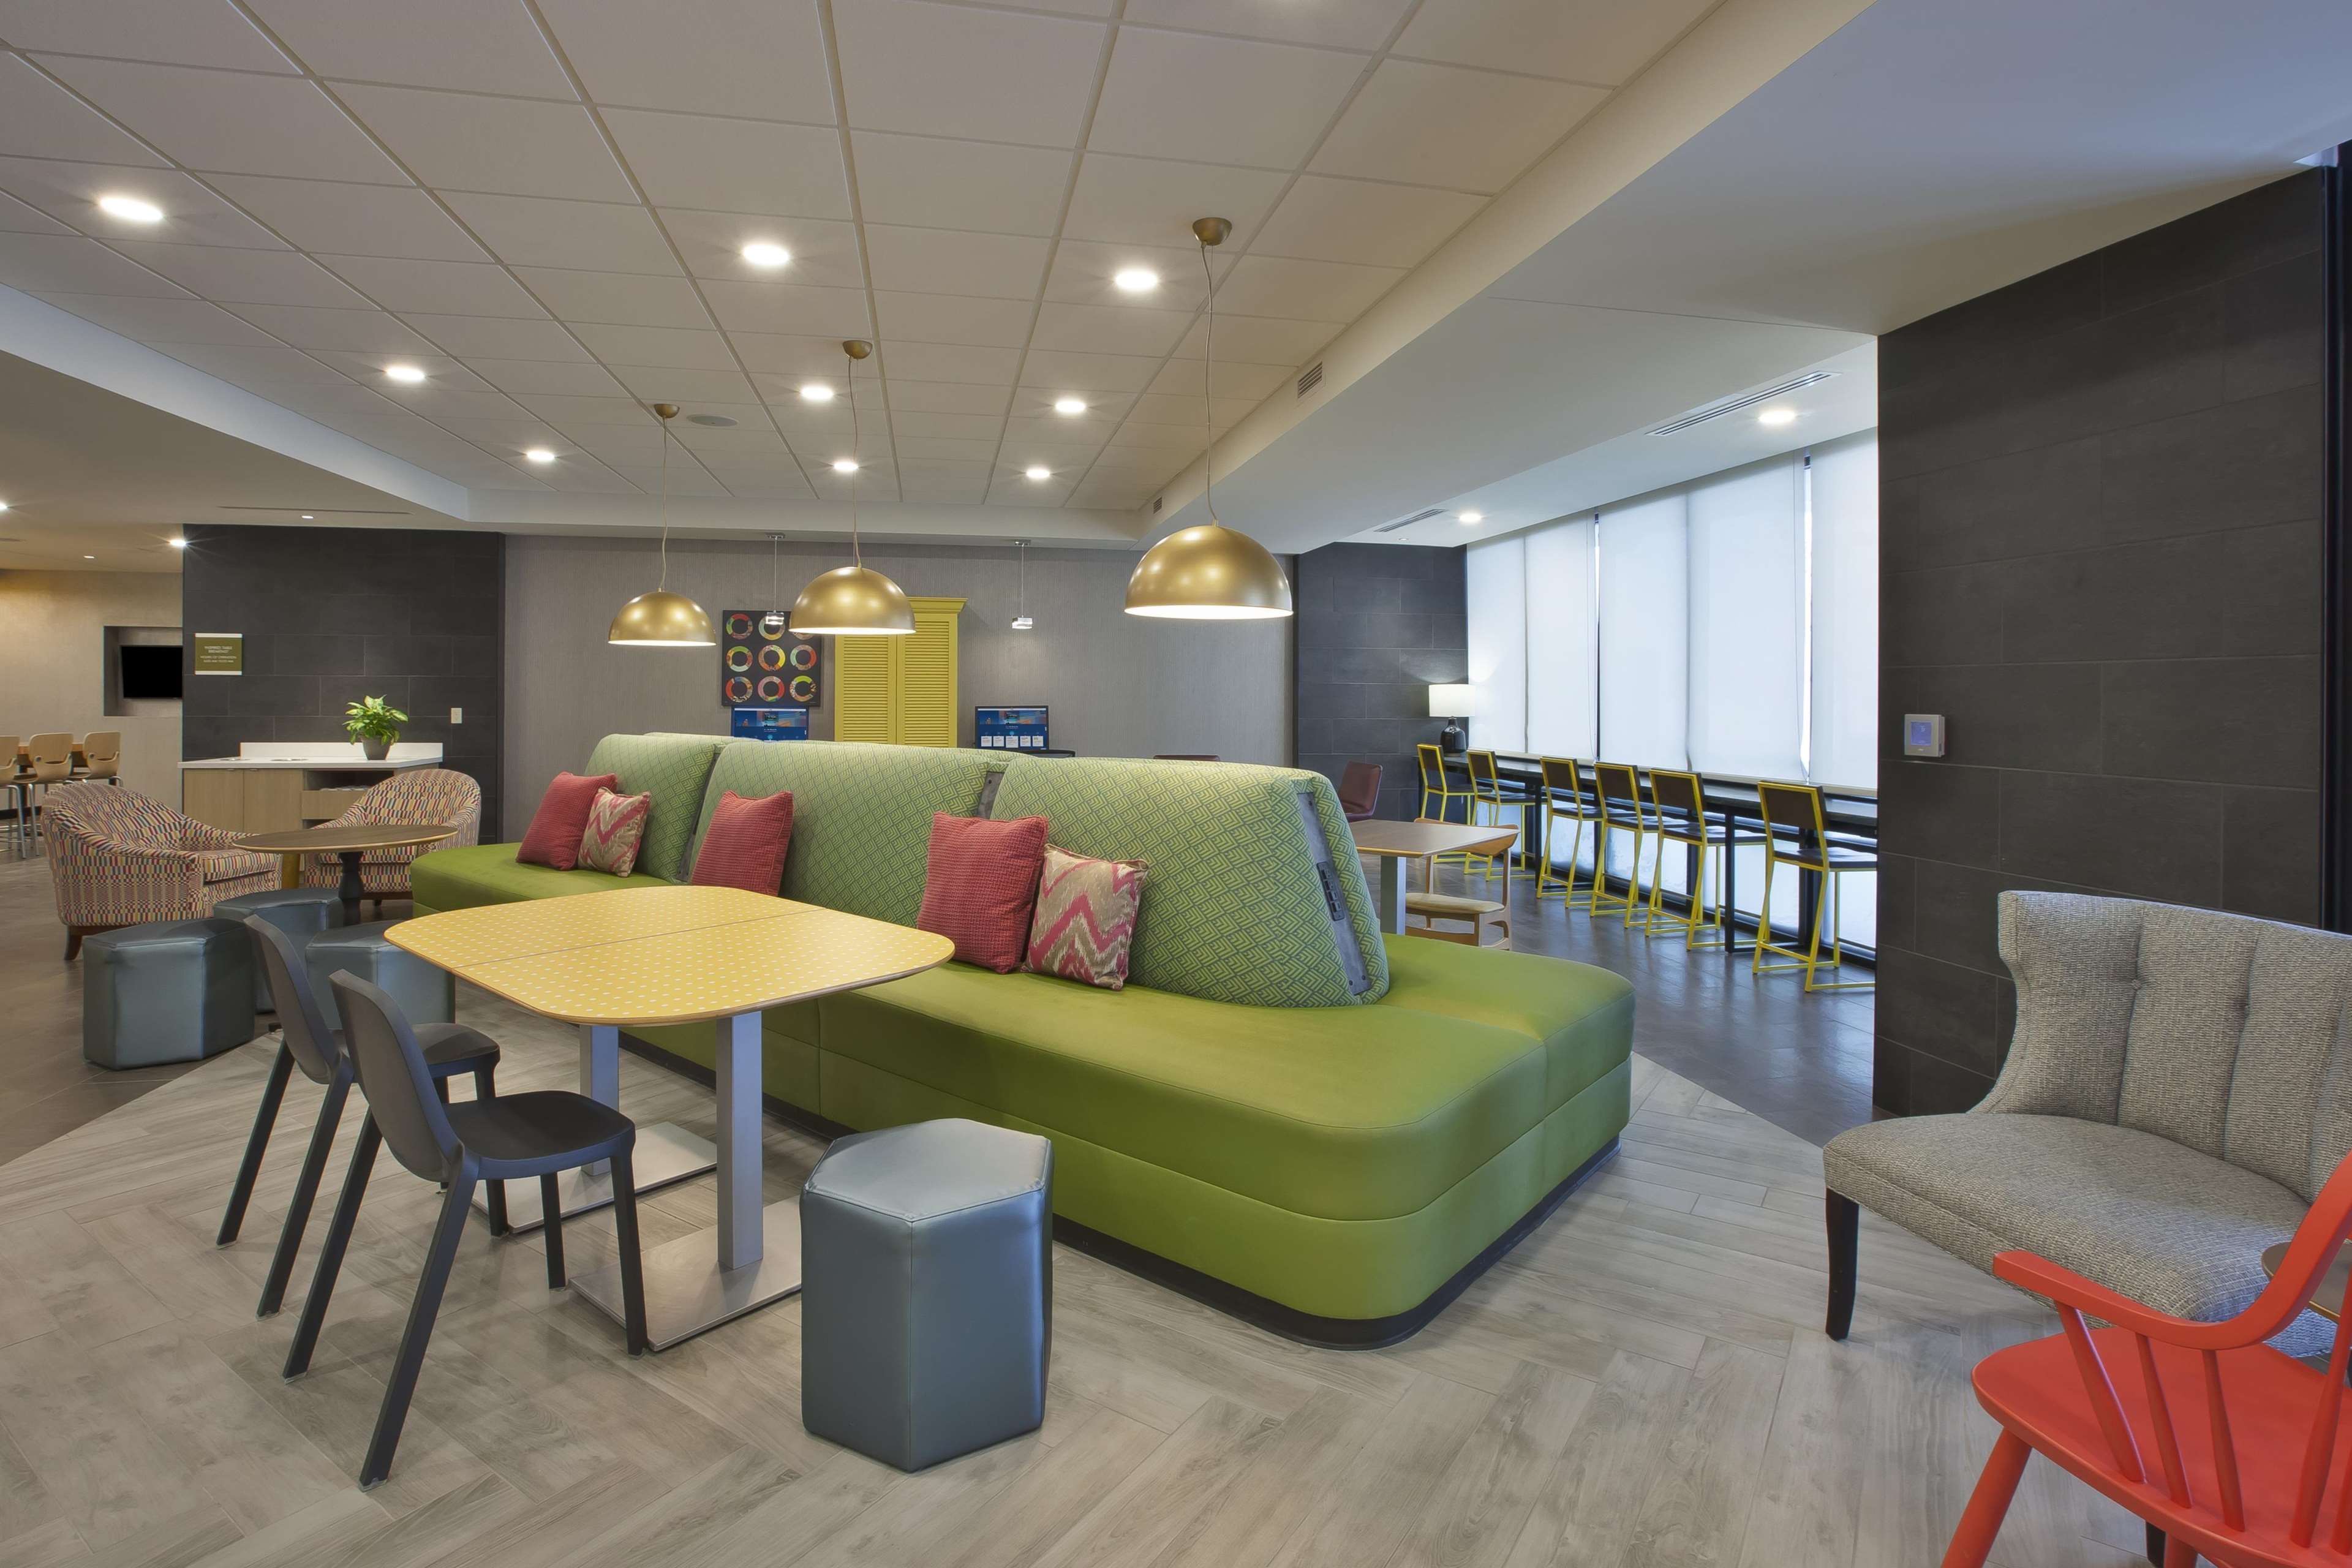 Home2 Suites by Hilton Holland image 2